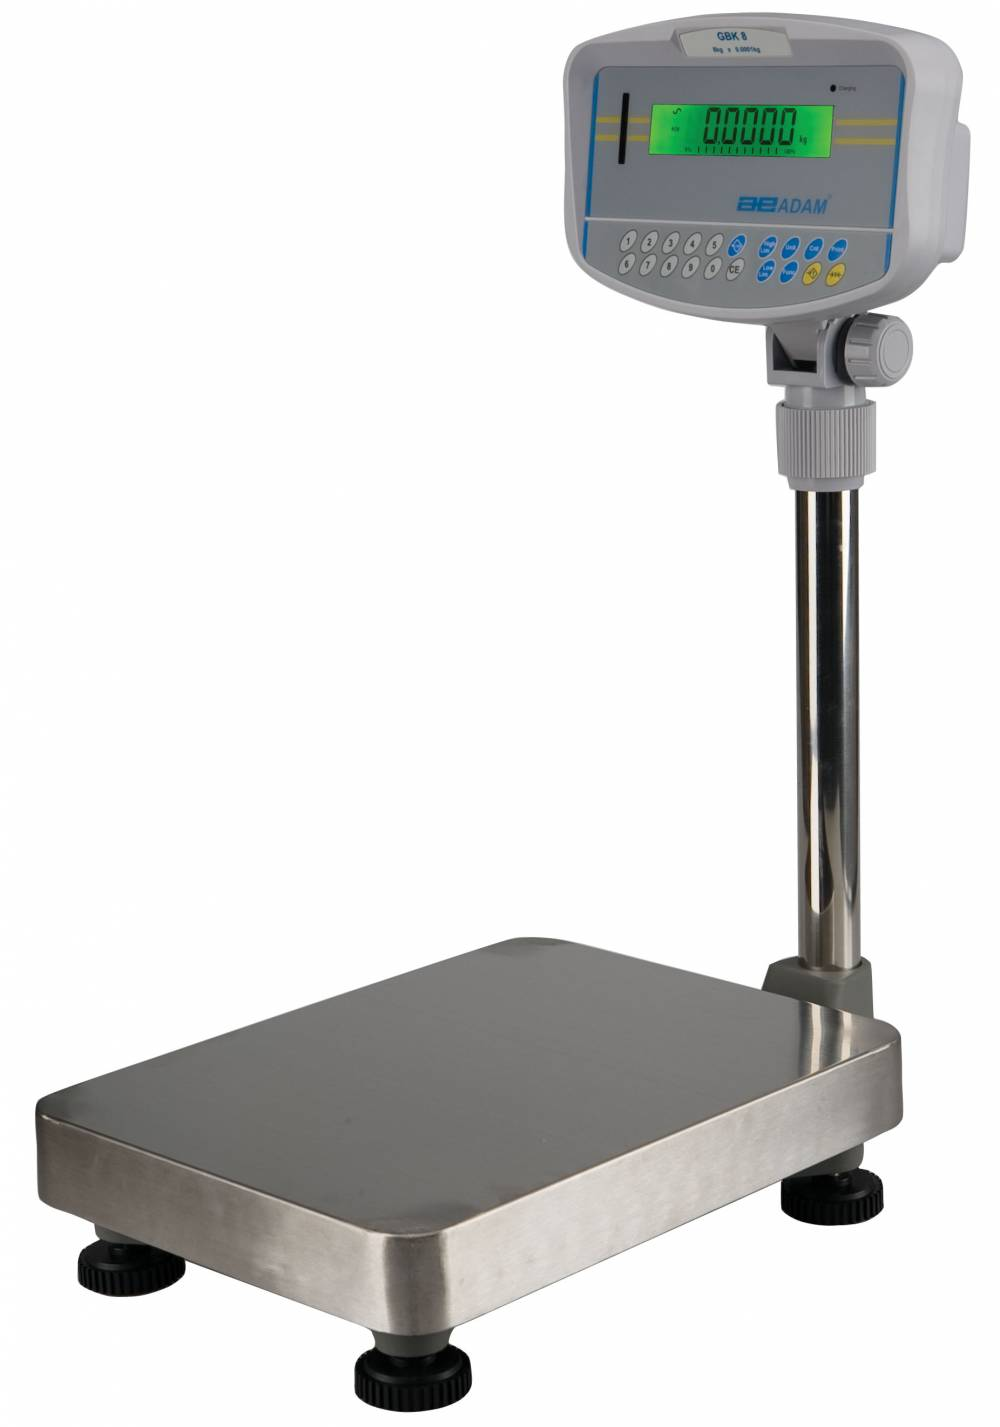 instructions for prestige weighing scale